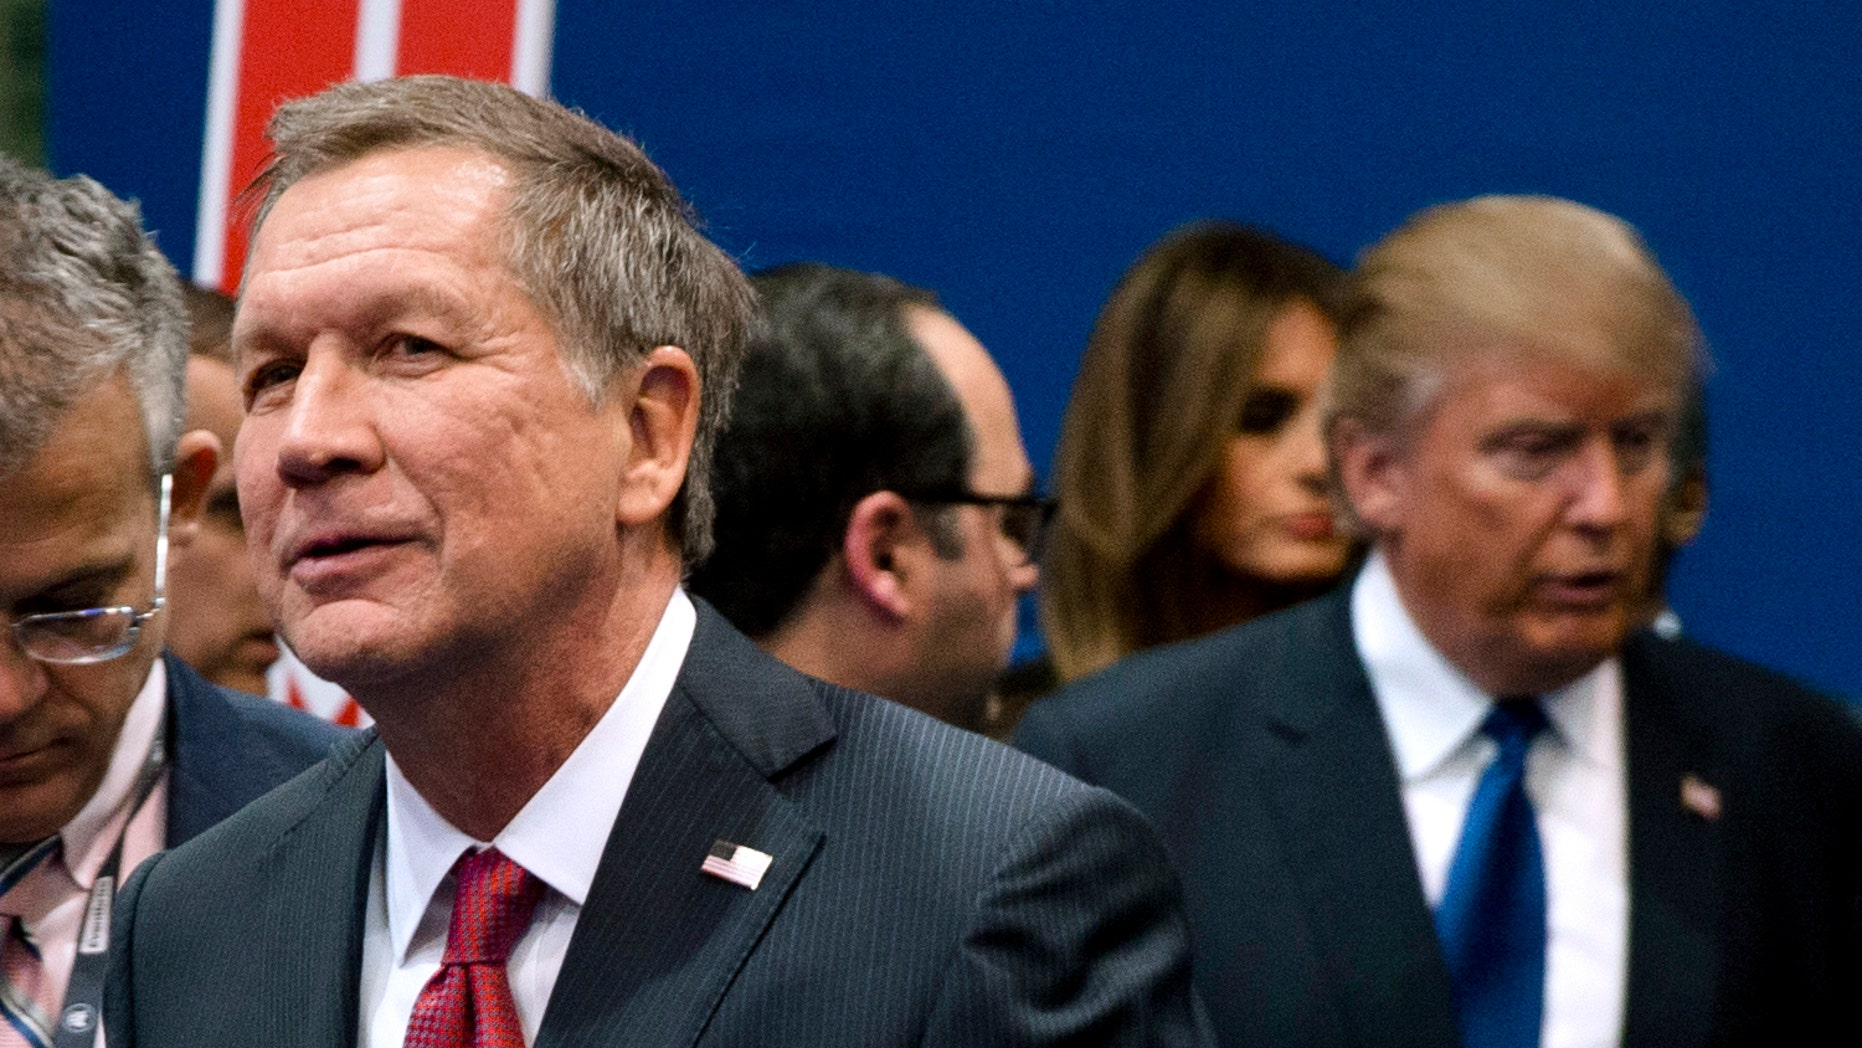 Feb. 6, 2016: Ohio Gov. John Kasich, left, and Donald Trump, right, speak to reporters after a Republican presidential primary debate hosted by ABC News at Saint Anselm College in Manchester, N.H.